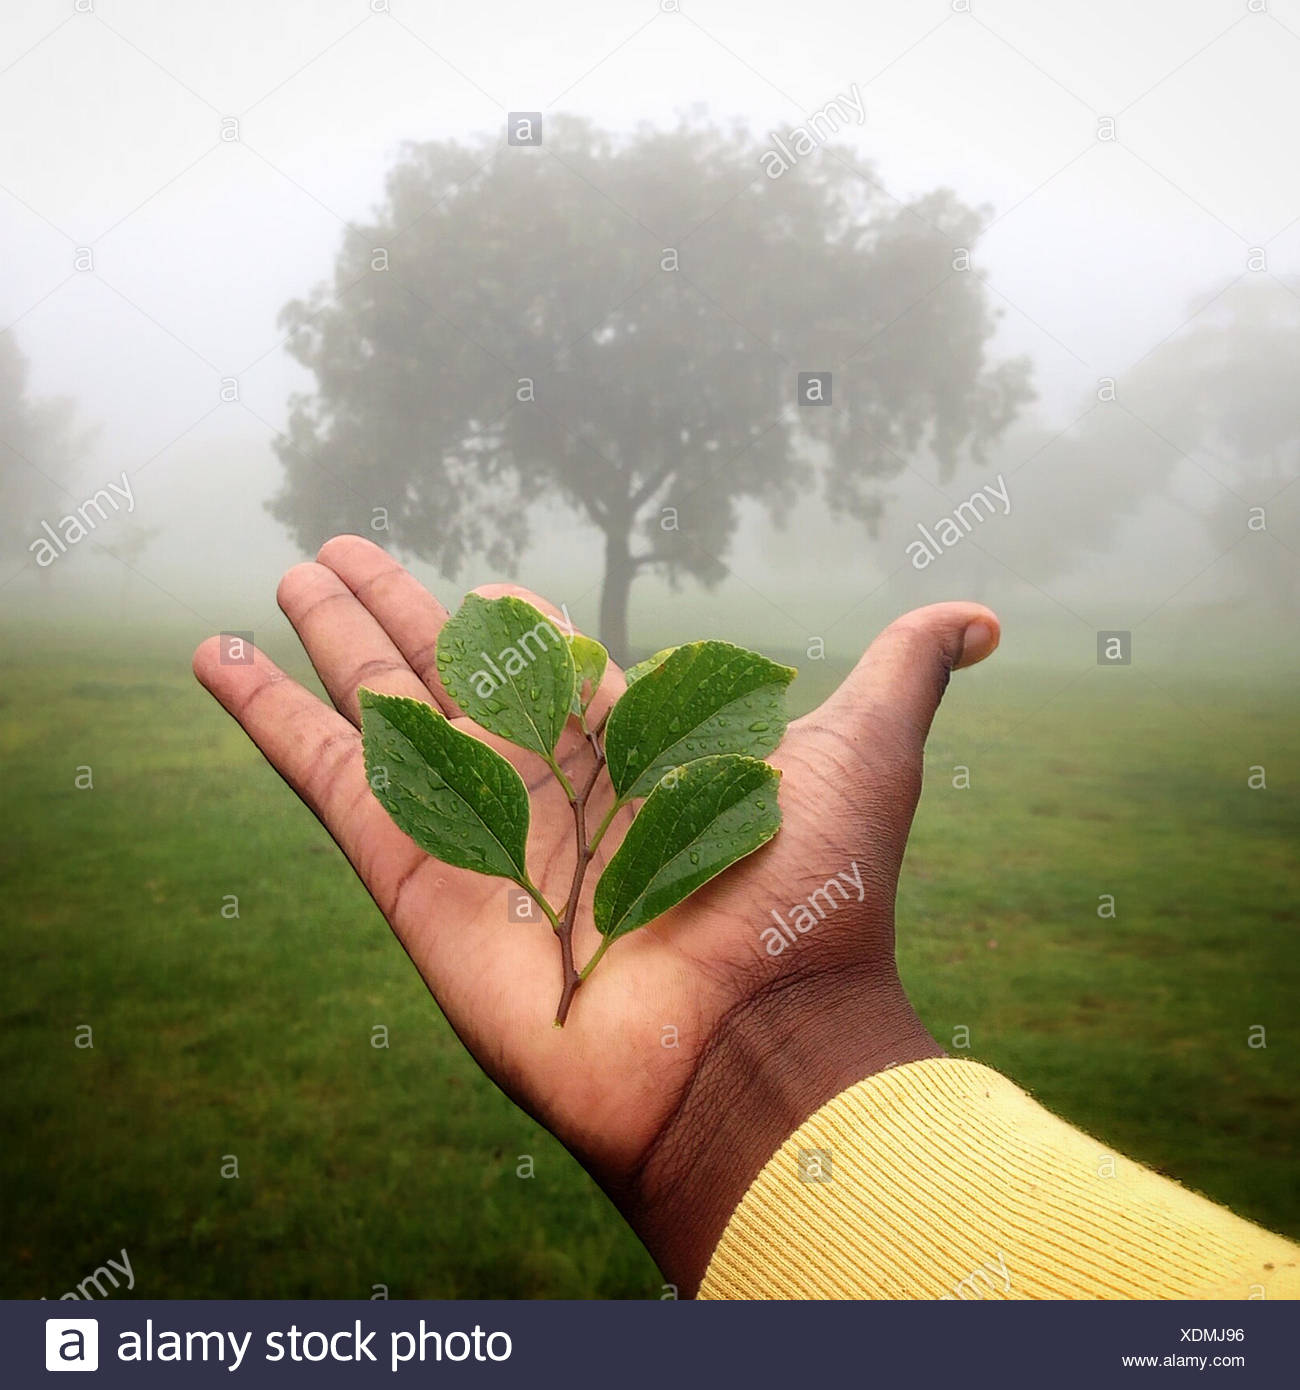 Human hand holding plant with tree in background, Gauteng, Johannesburg, South Africa - Stock Image